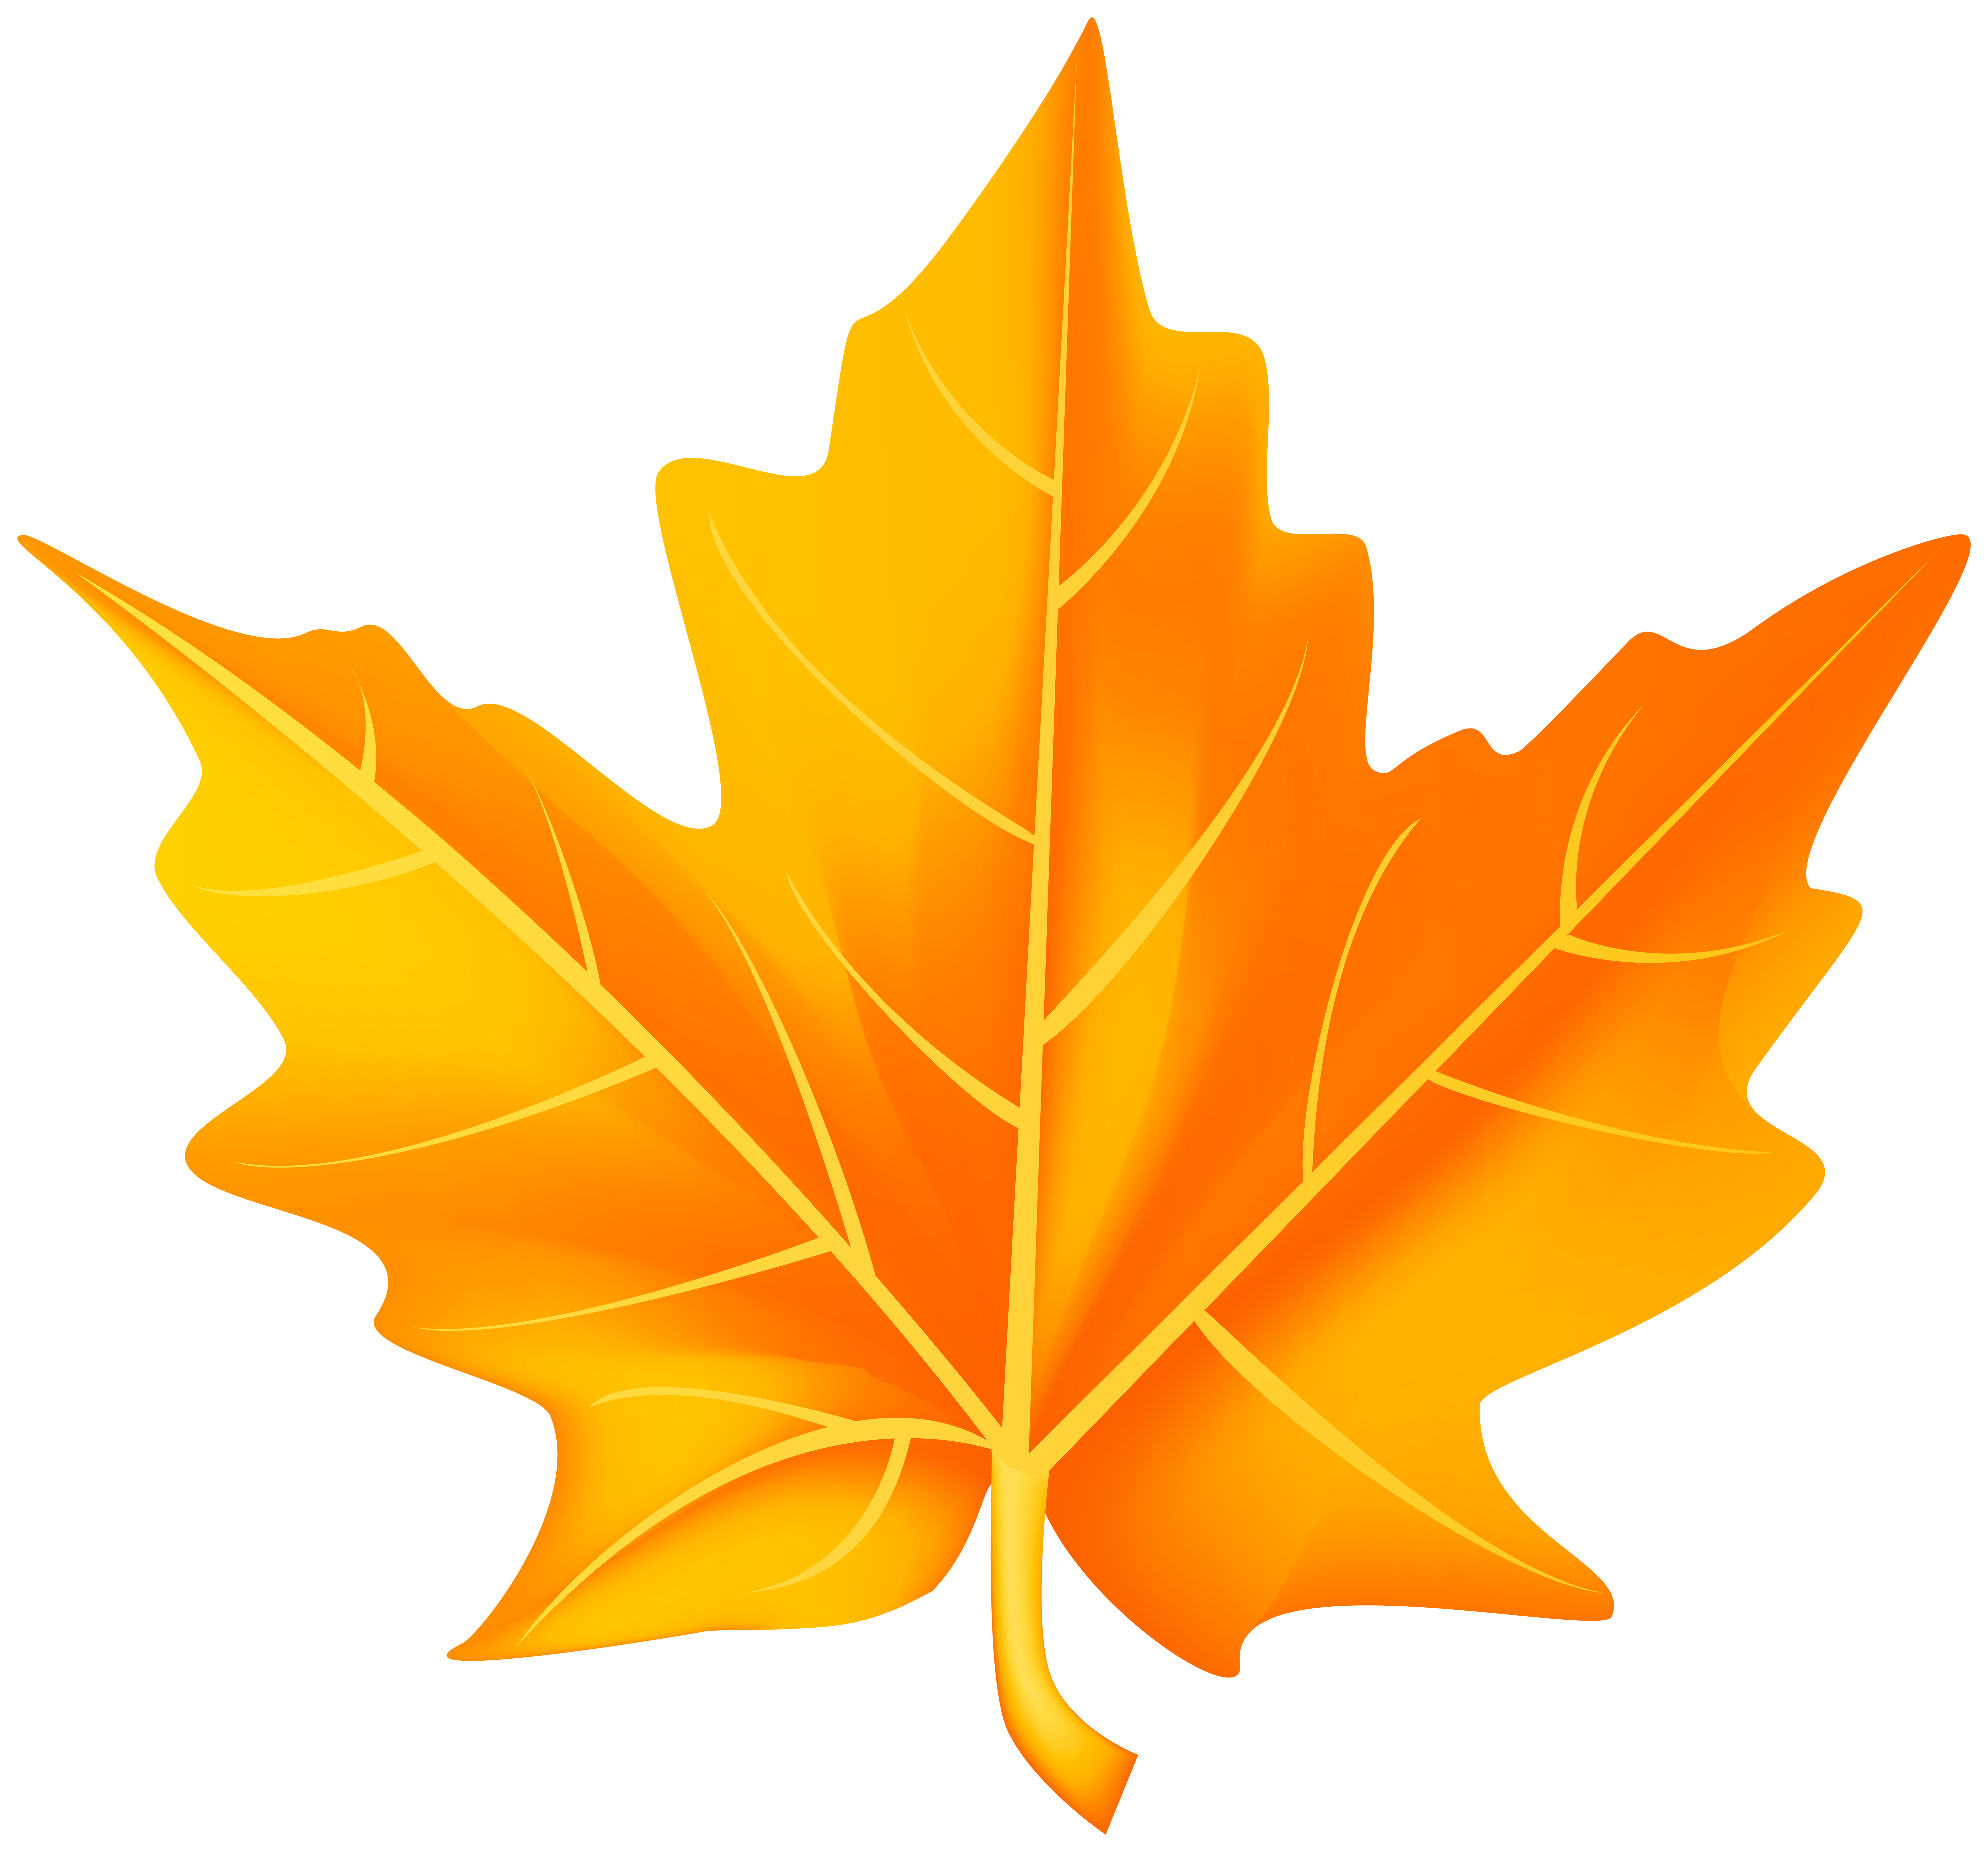 Orange Fall Leaf Png Clipart Gallery Yopriceville High Quality Images And Transparent Png Free Clipart Fall Leaves Png Fall Leaves Images Autumn Leaves